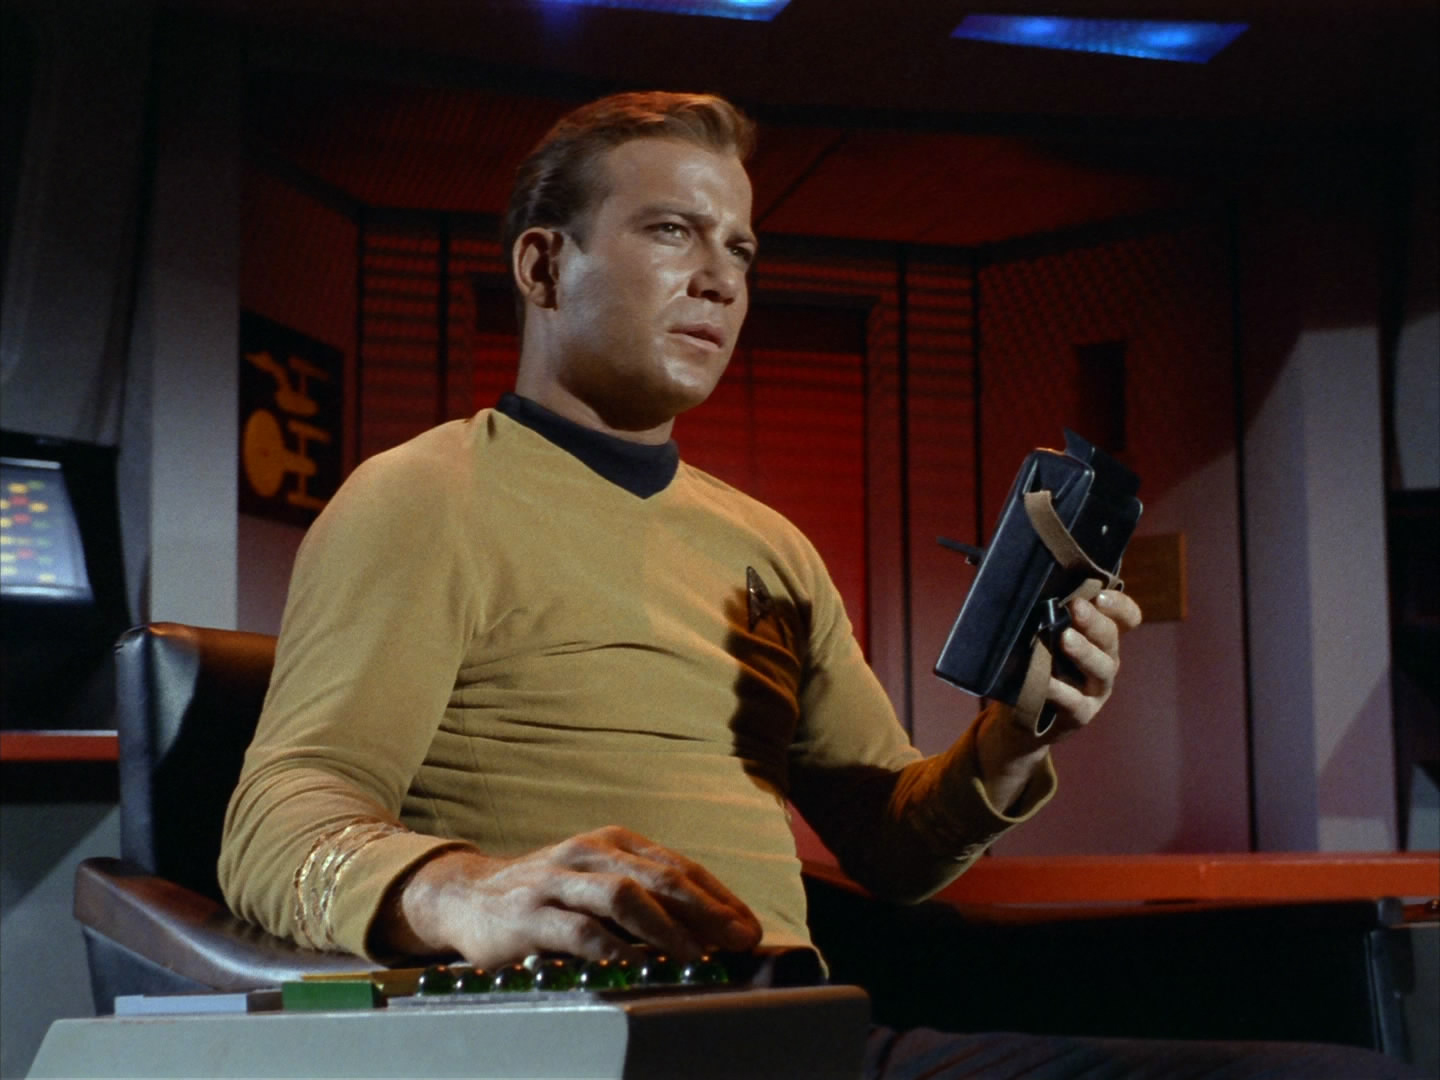 Star Trek Fact Check: Captain's Log, Stardate: Unknown